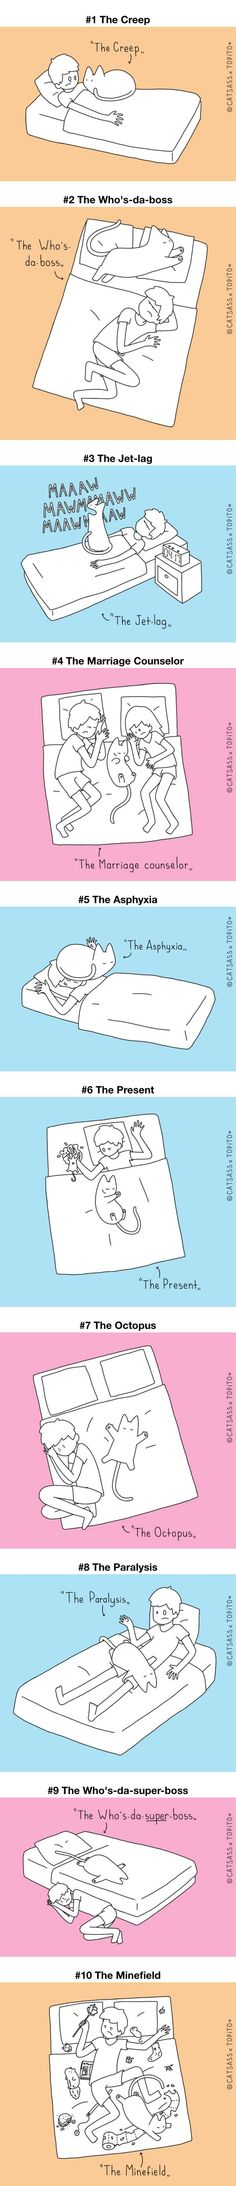 Top 10 Positions To Sleep With Your Human